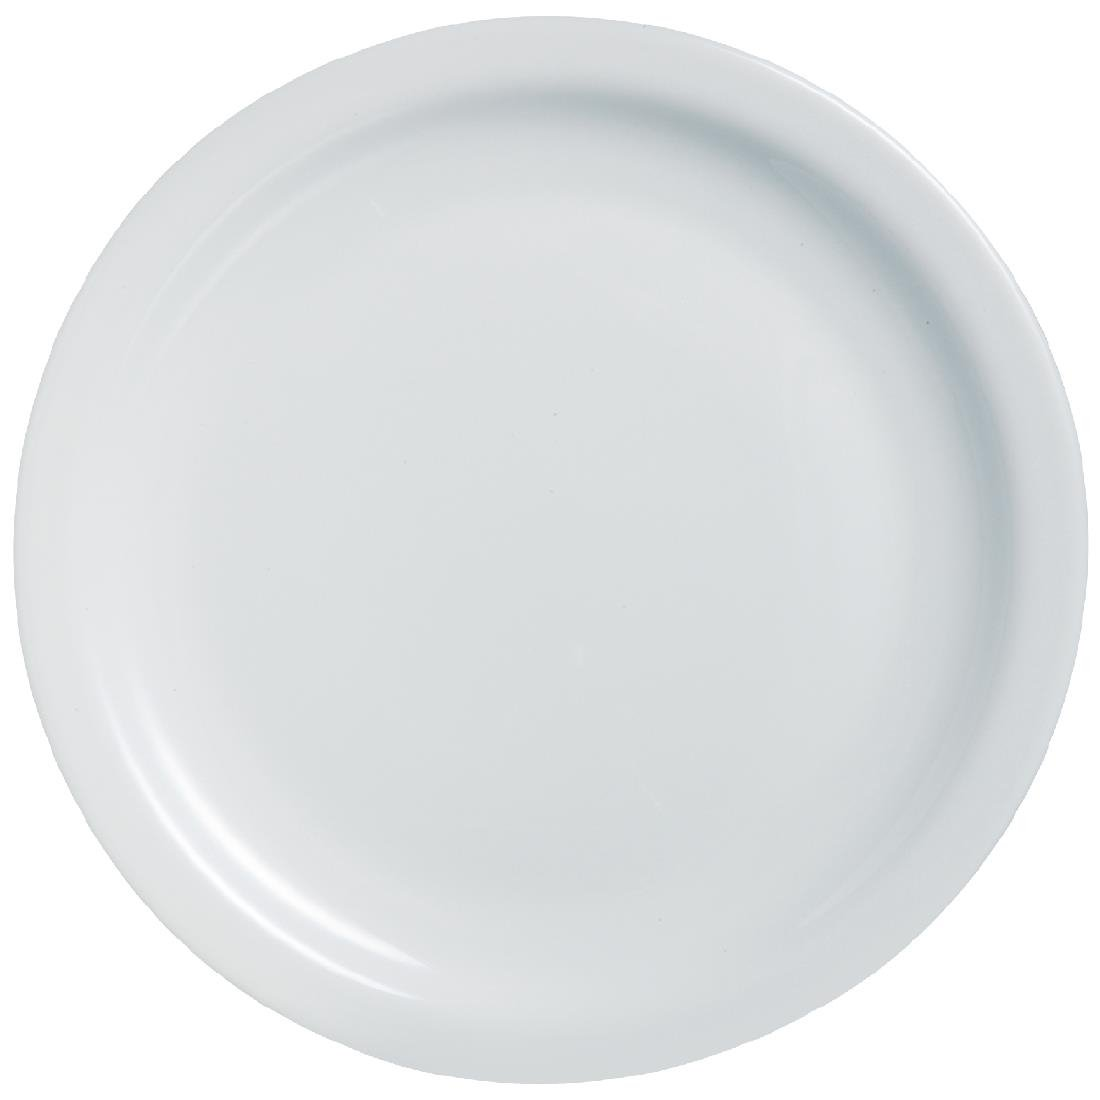 Image of Arcoroc Opal Hoteliere Narrow Rim Plates 155mm (Pack of 6) Pack of 6